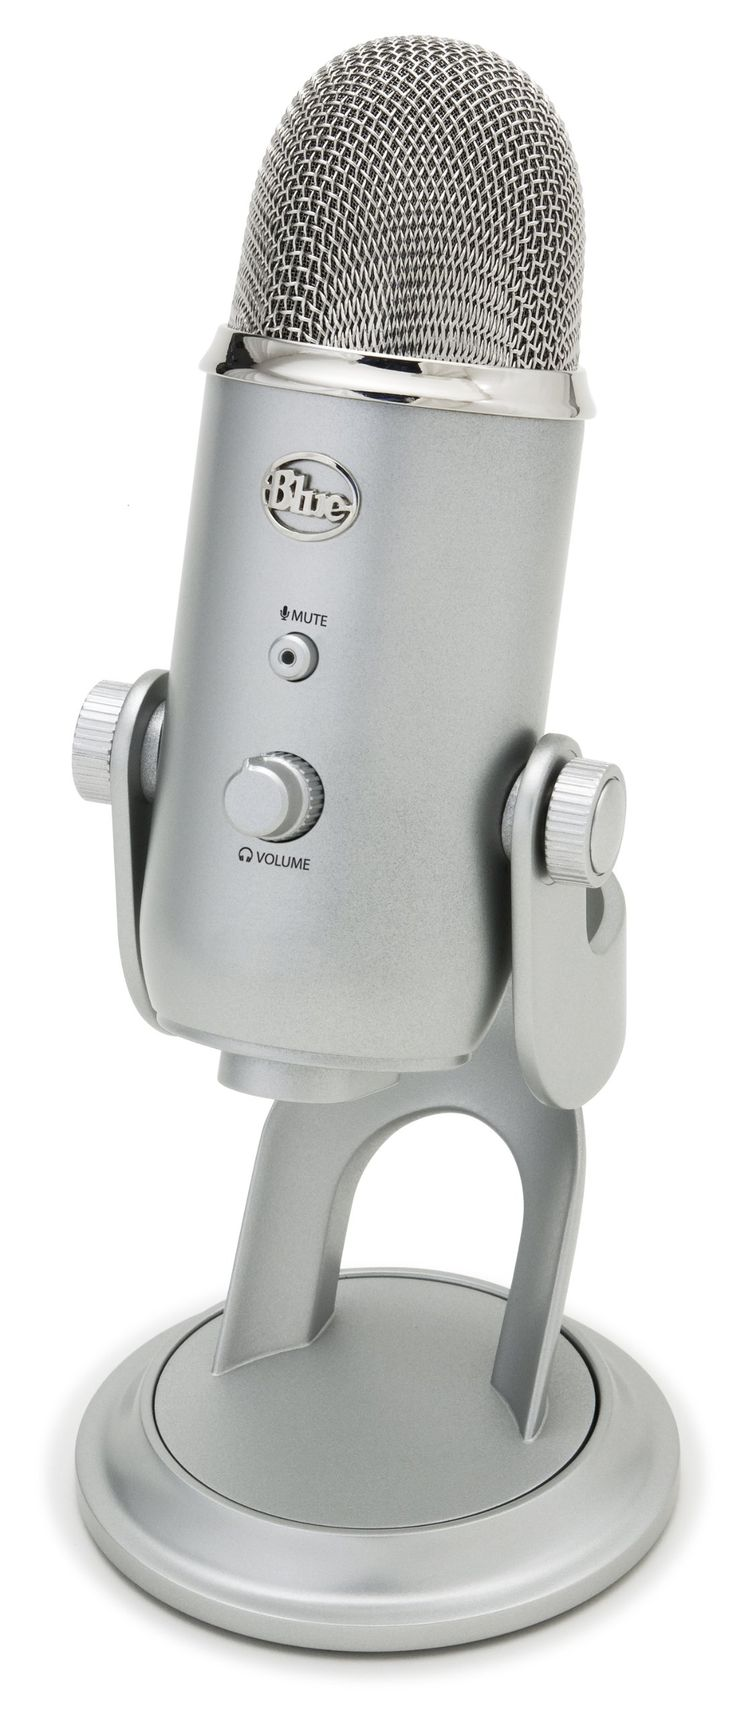 Blue Yeti USB Microphone - has to be USB